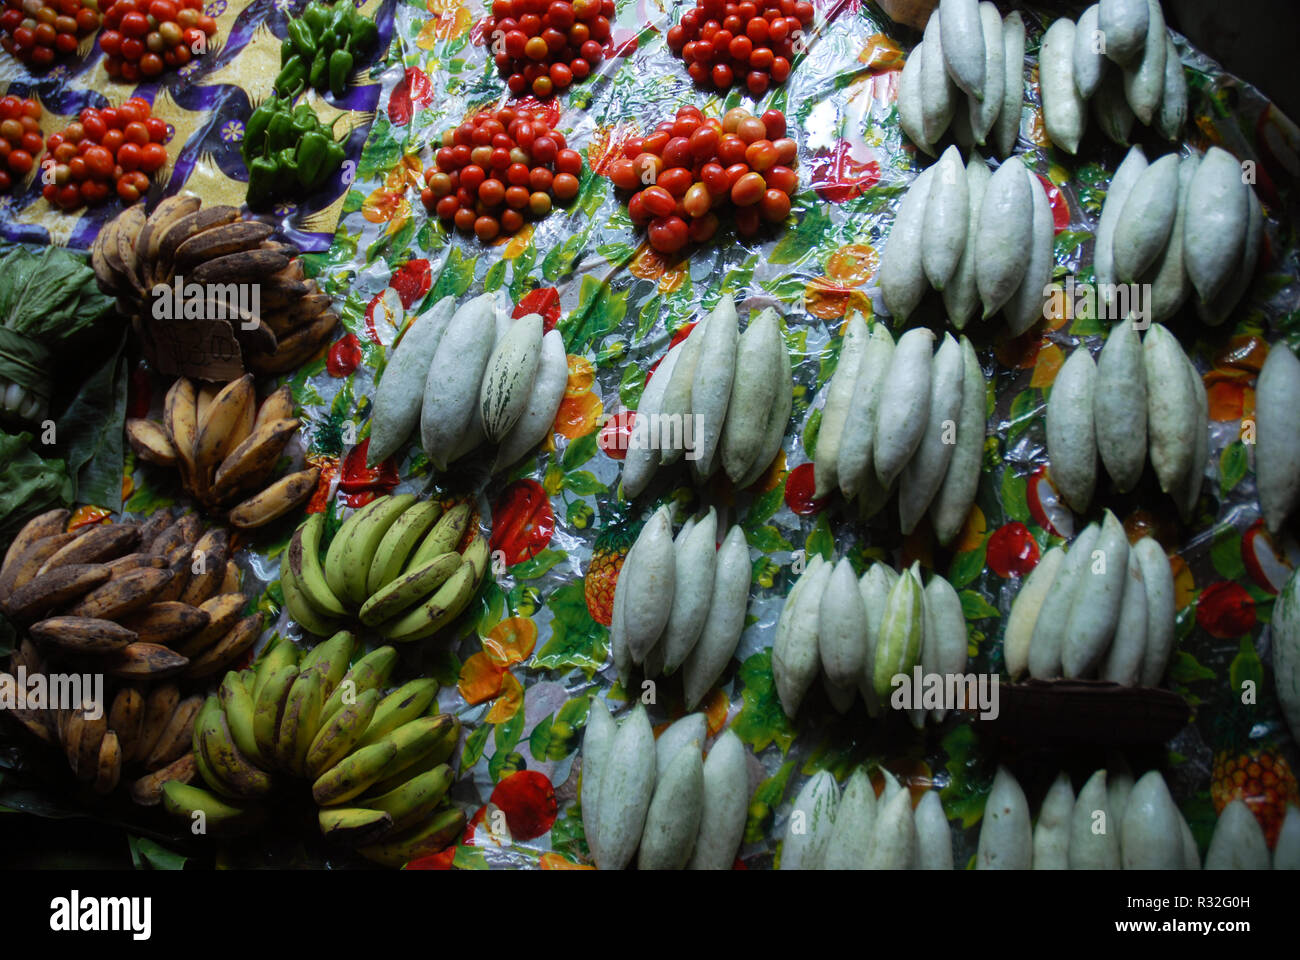 Small piles of fruit and vegetables to sell at Honiara Central Market, Honiara, Solomon Islands. - Stock Image